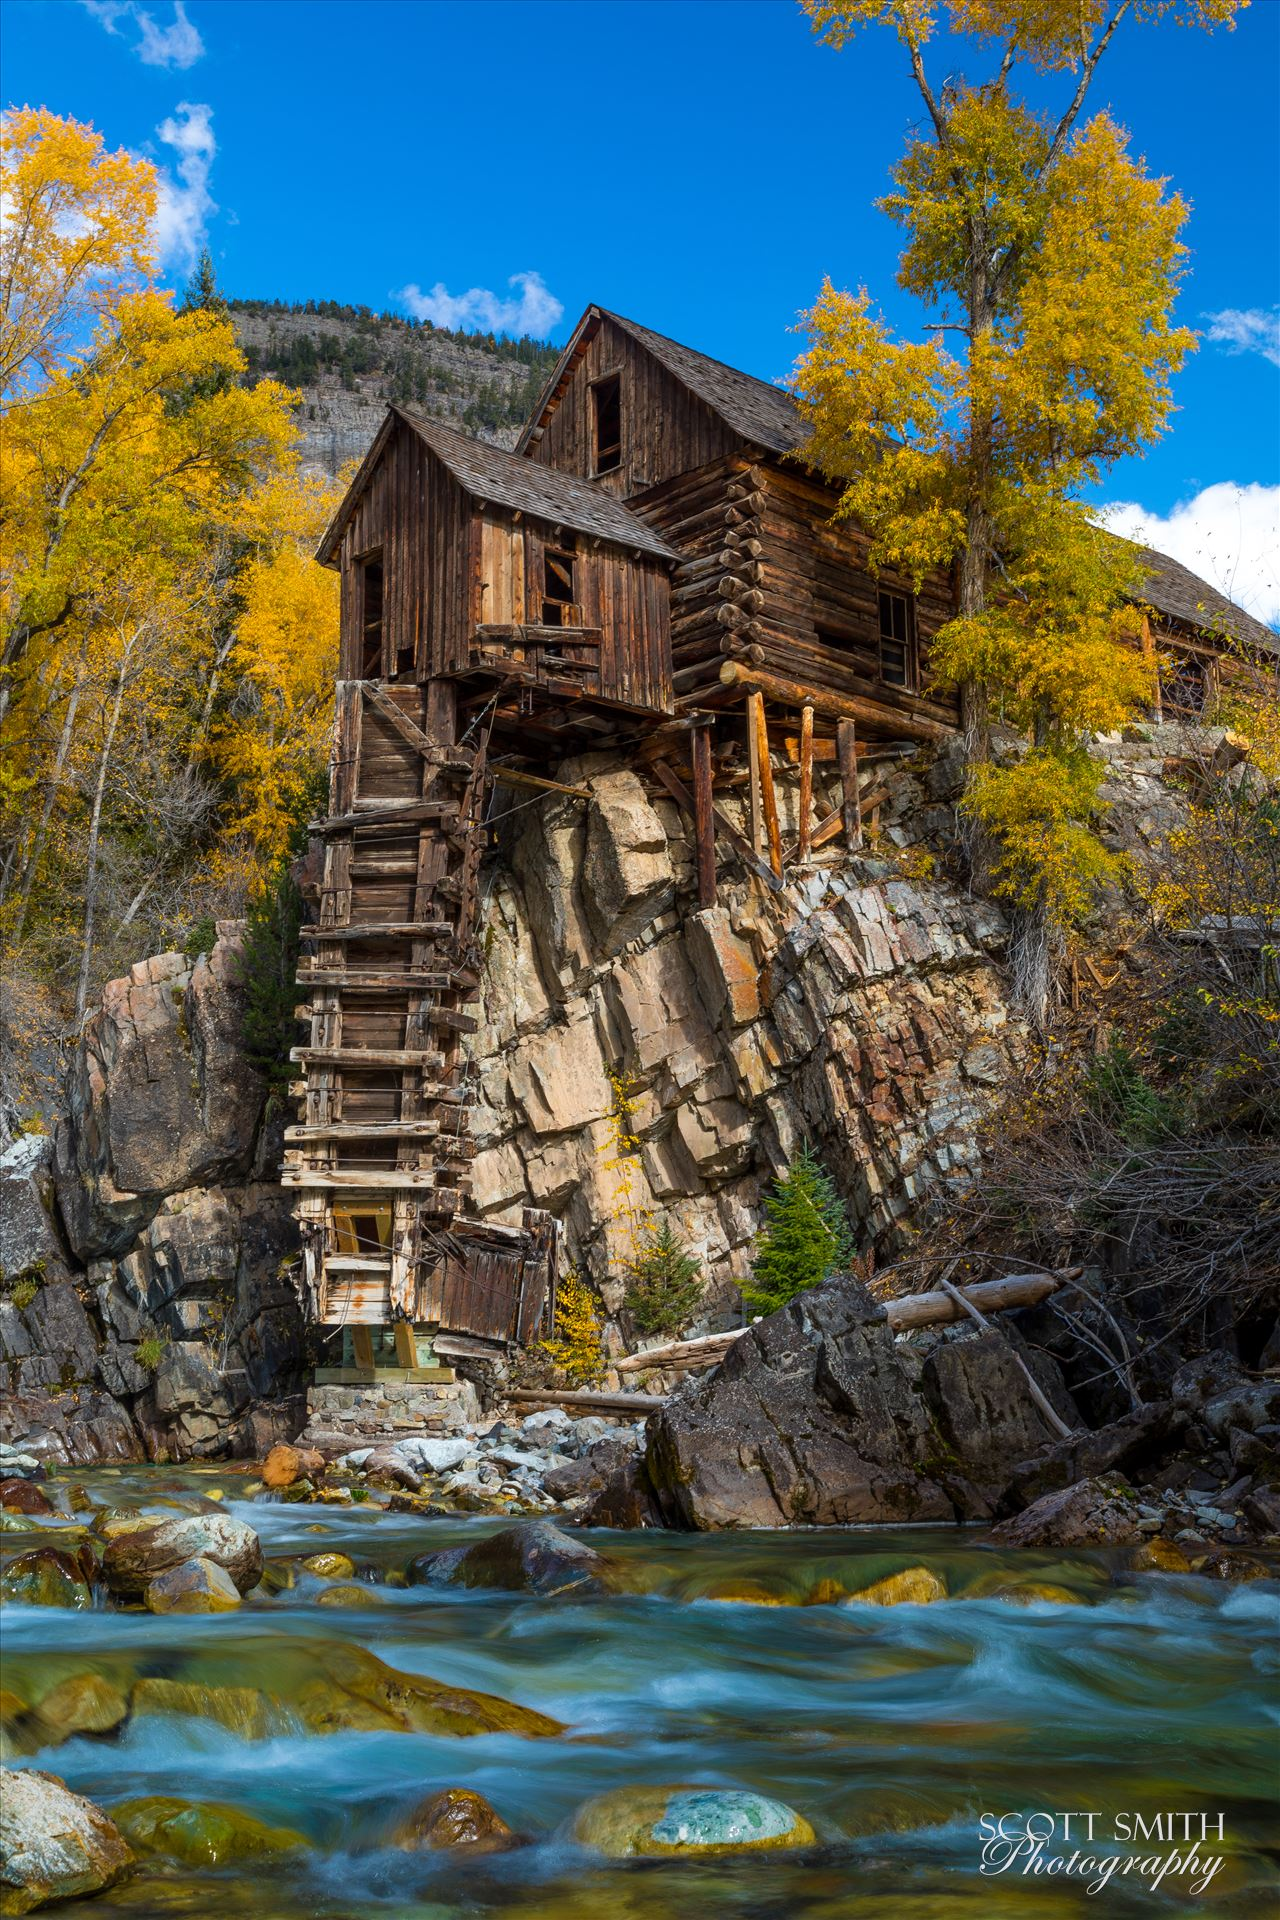 Crystal Mill No 4 - The Crystal Mill, or the Old Mill is an 1892 wooden powerhouse located on an outcrop above the Crystal River in Crystal, Colorado by D Scott Smith